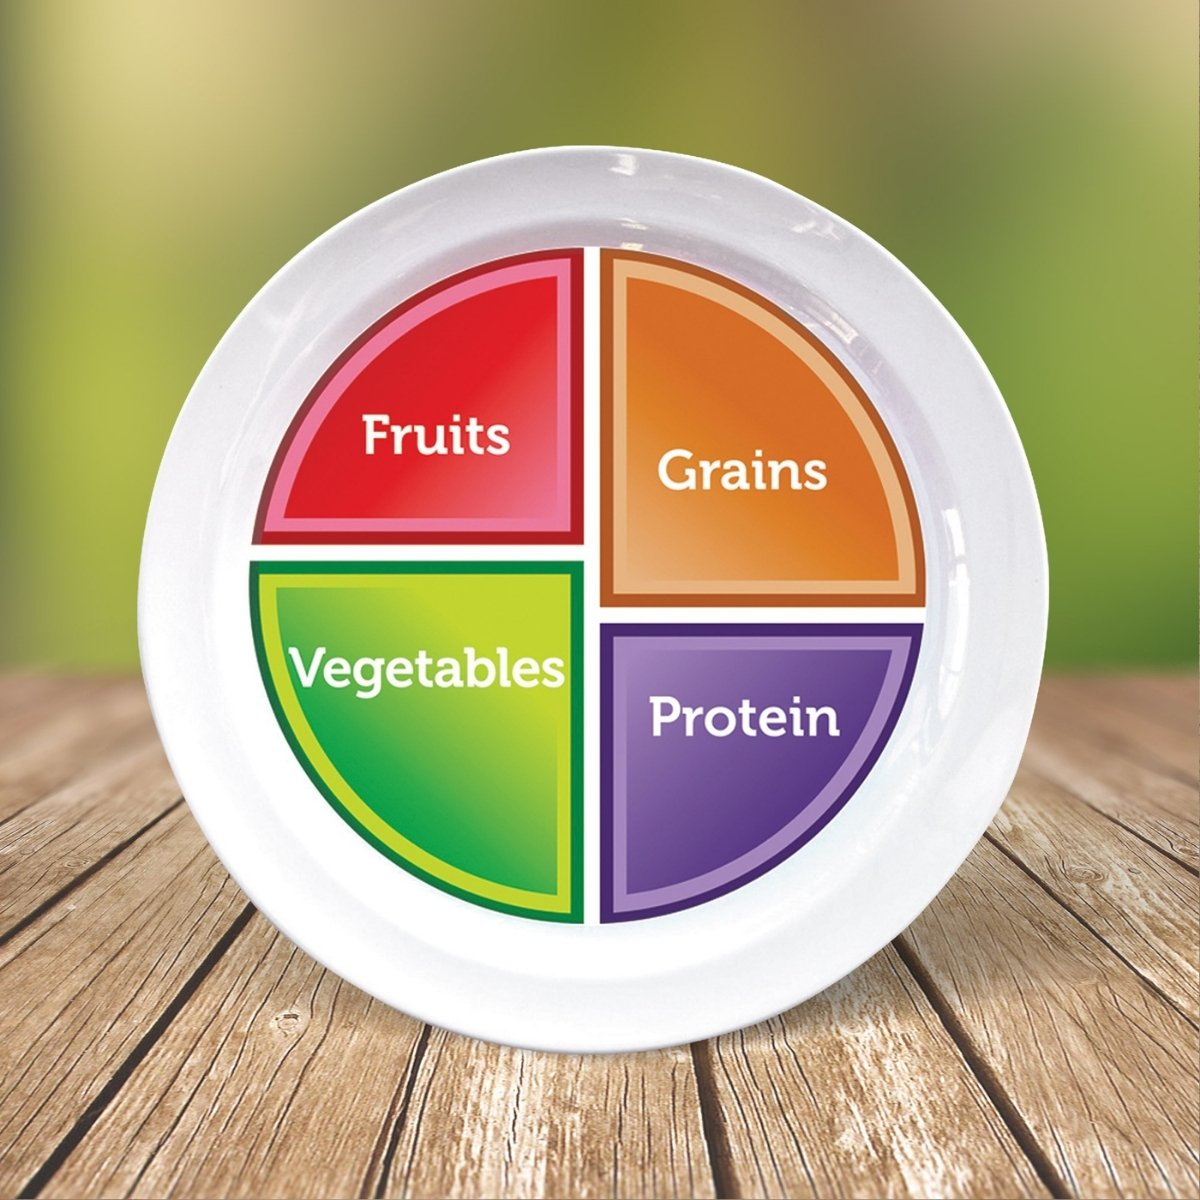 Portion control plate with choose myplate image